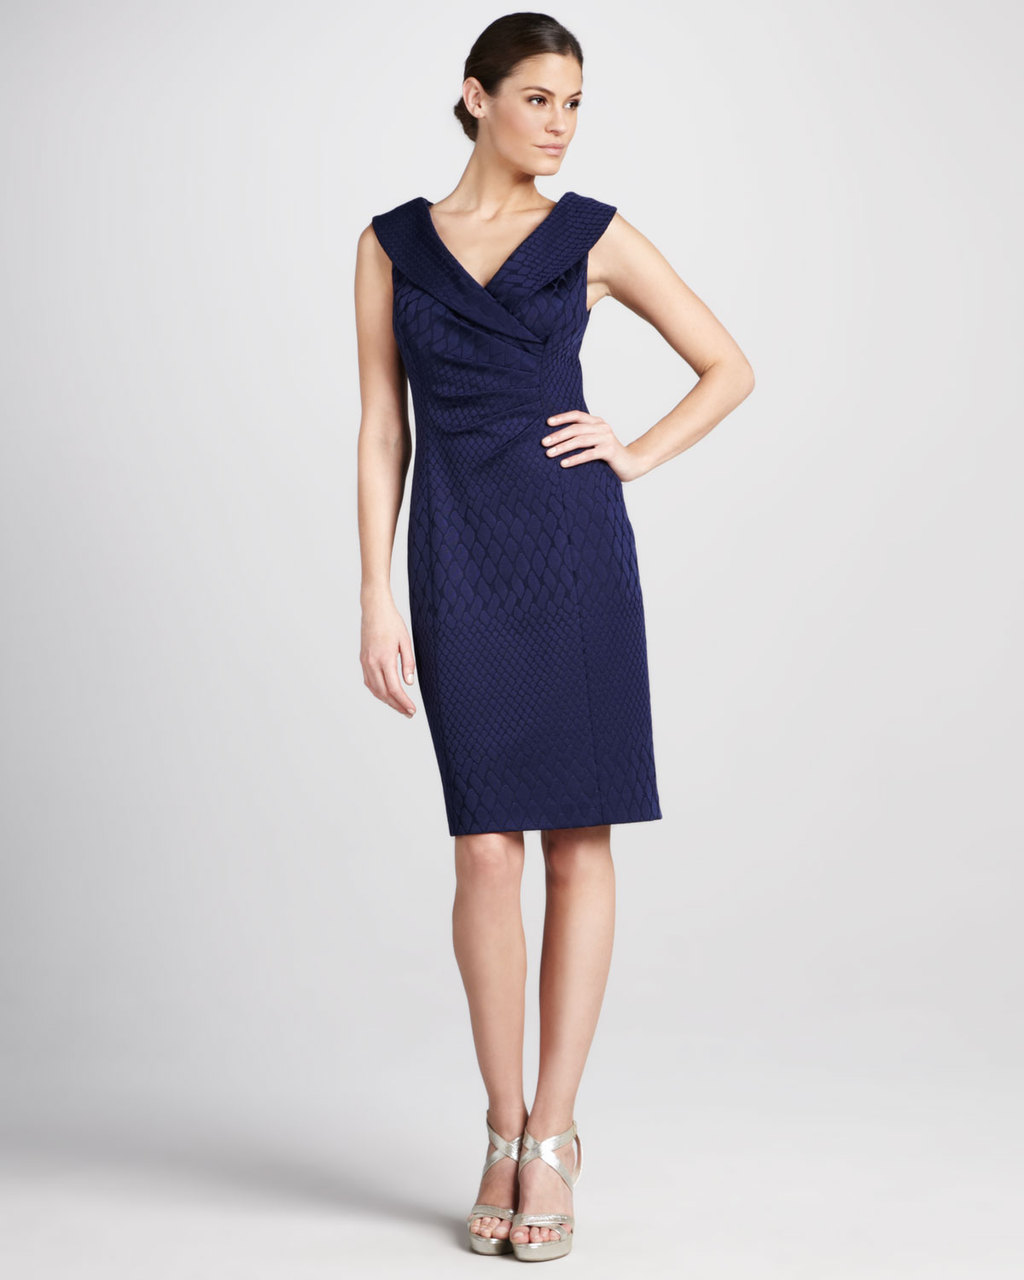 navy blue frock for MOB or bridesmaids